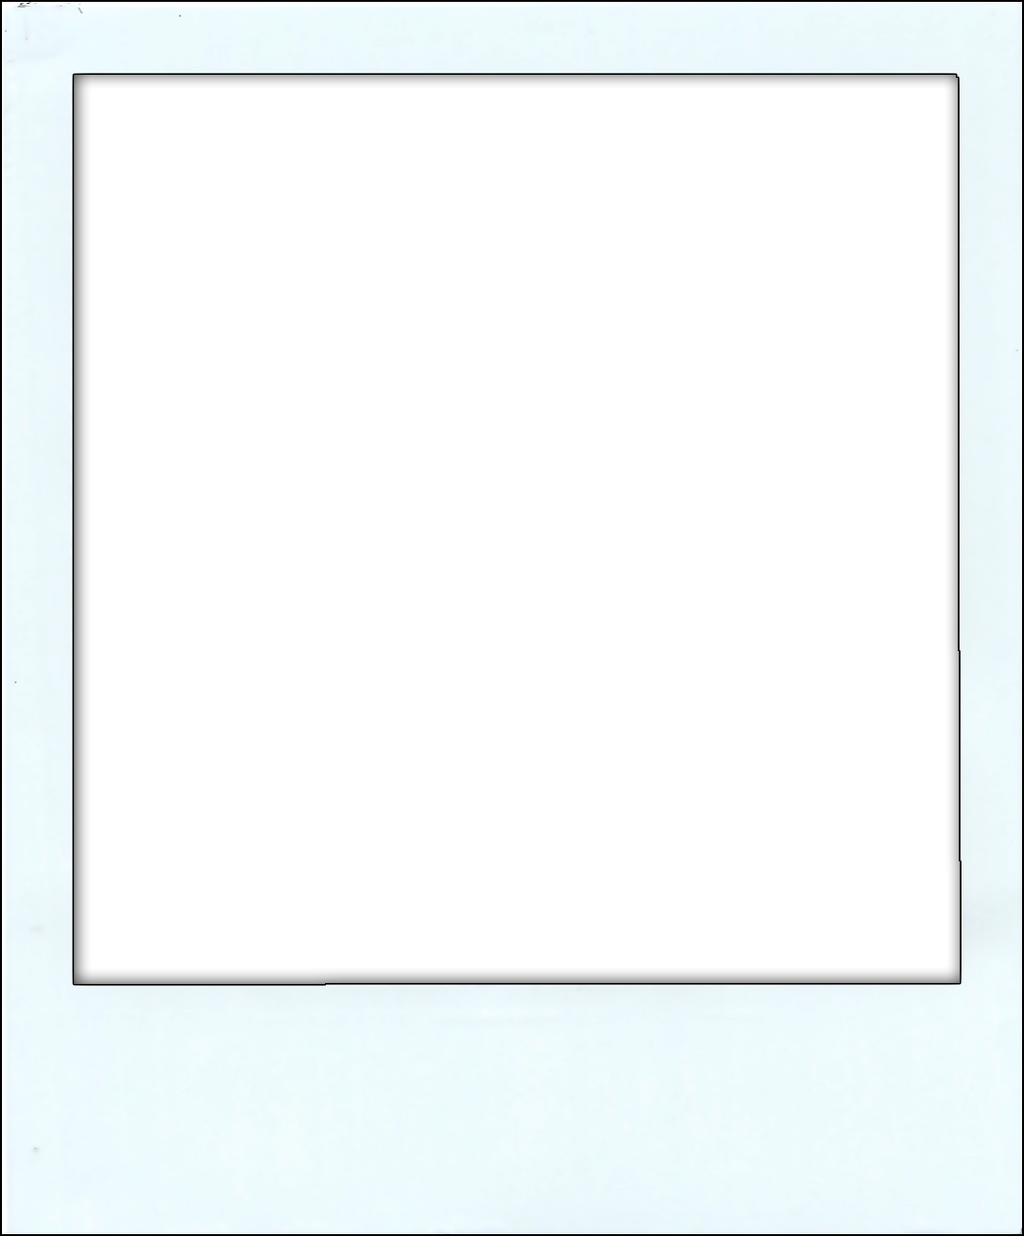 4x6 Picture Frame Template